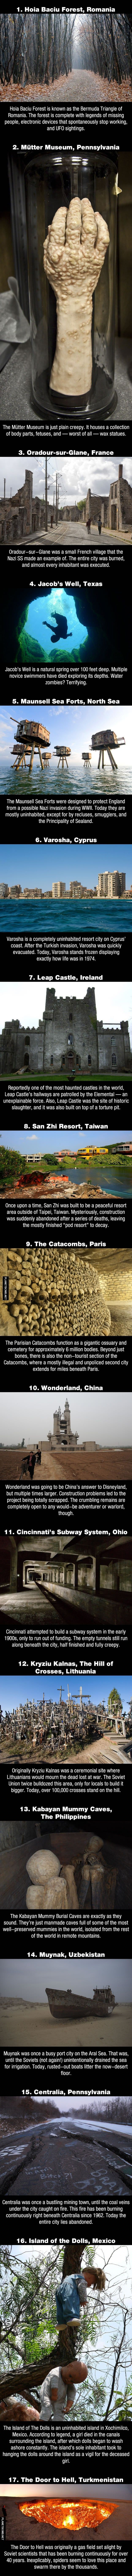 The 17 Scariest Places On Earth. Dare To Live In Any One Of Them For A Month For 1 Million? - Imgur